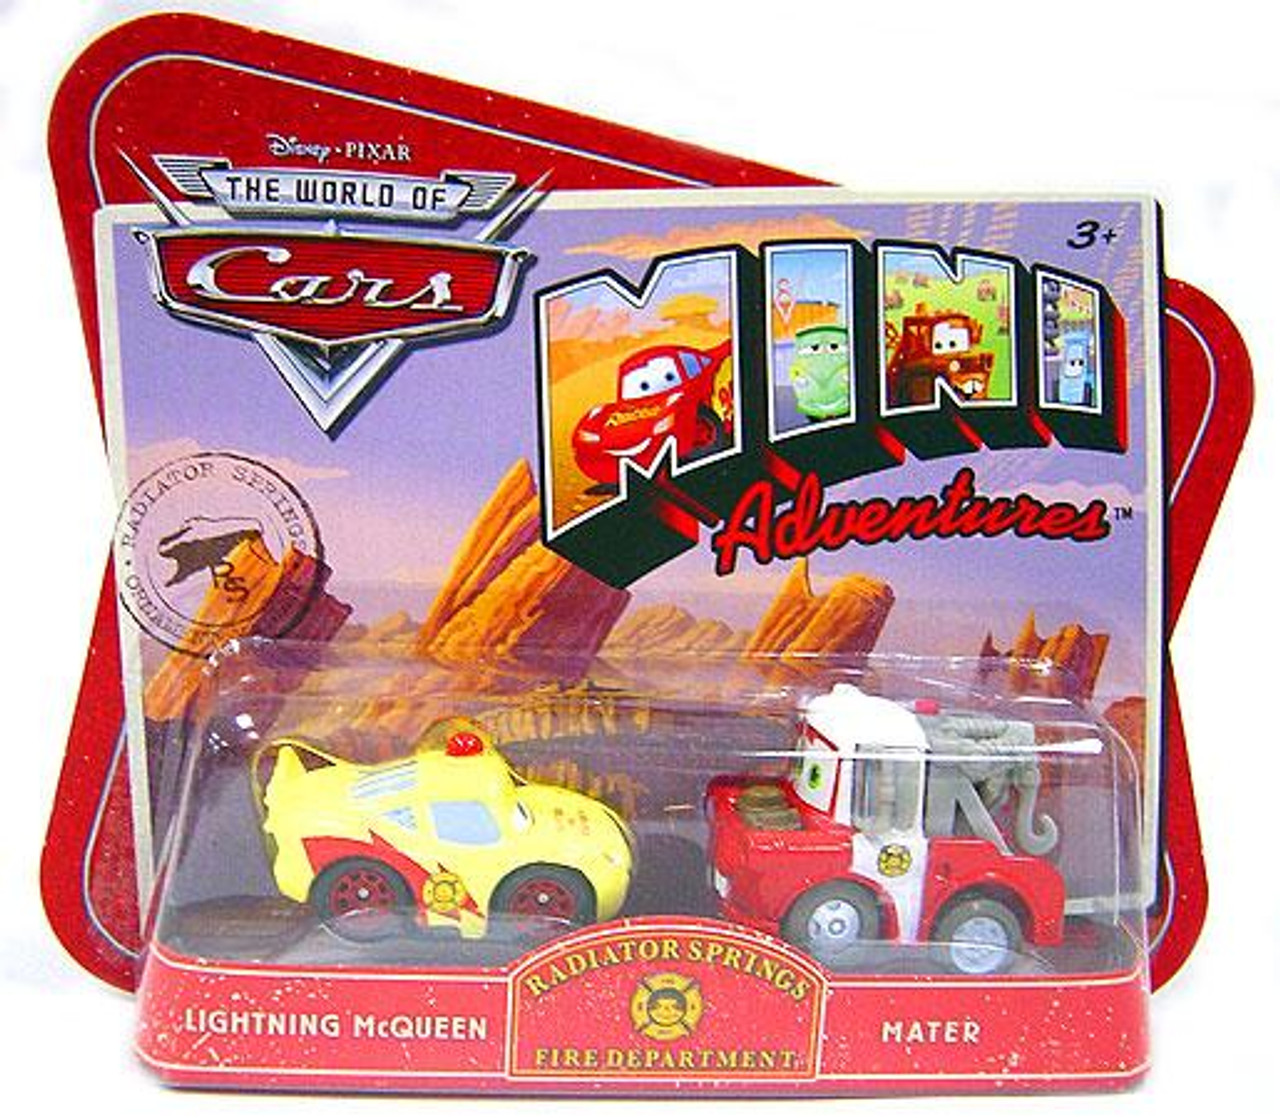 Disney Cars The World of Cars Mini Adventures Lightning McQueen & Mater Plastic Car 2-Pack [Radiator Springs Fire Department]